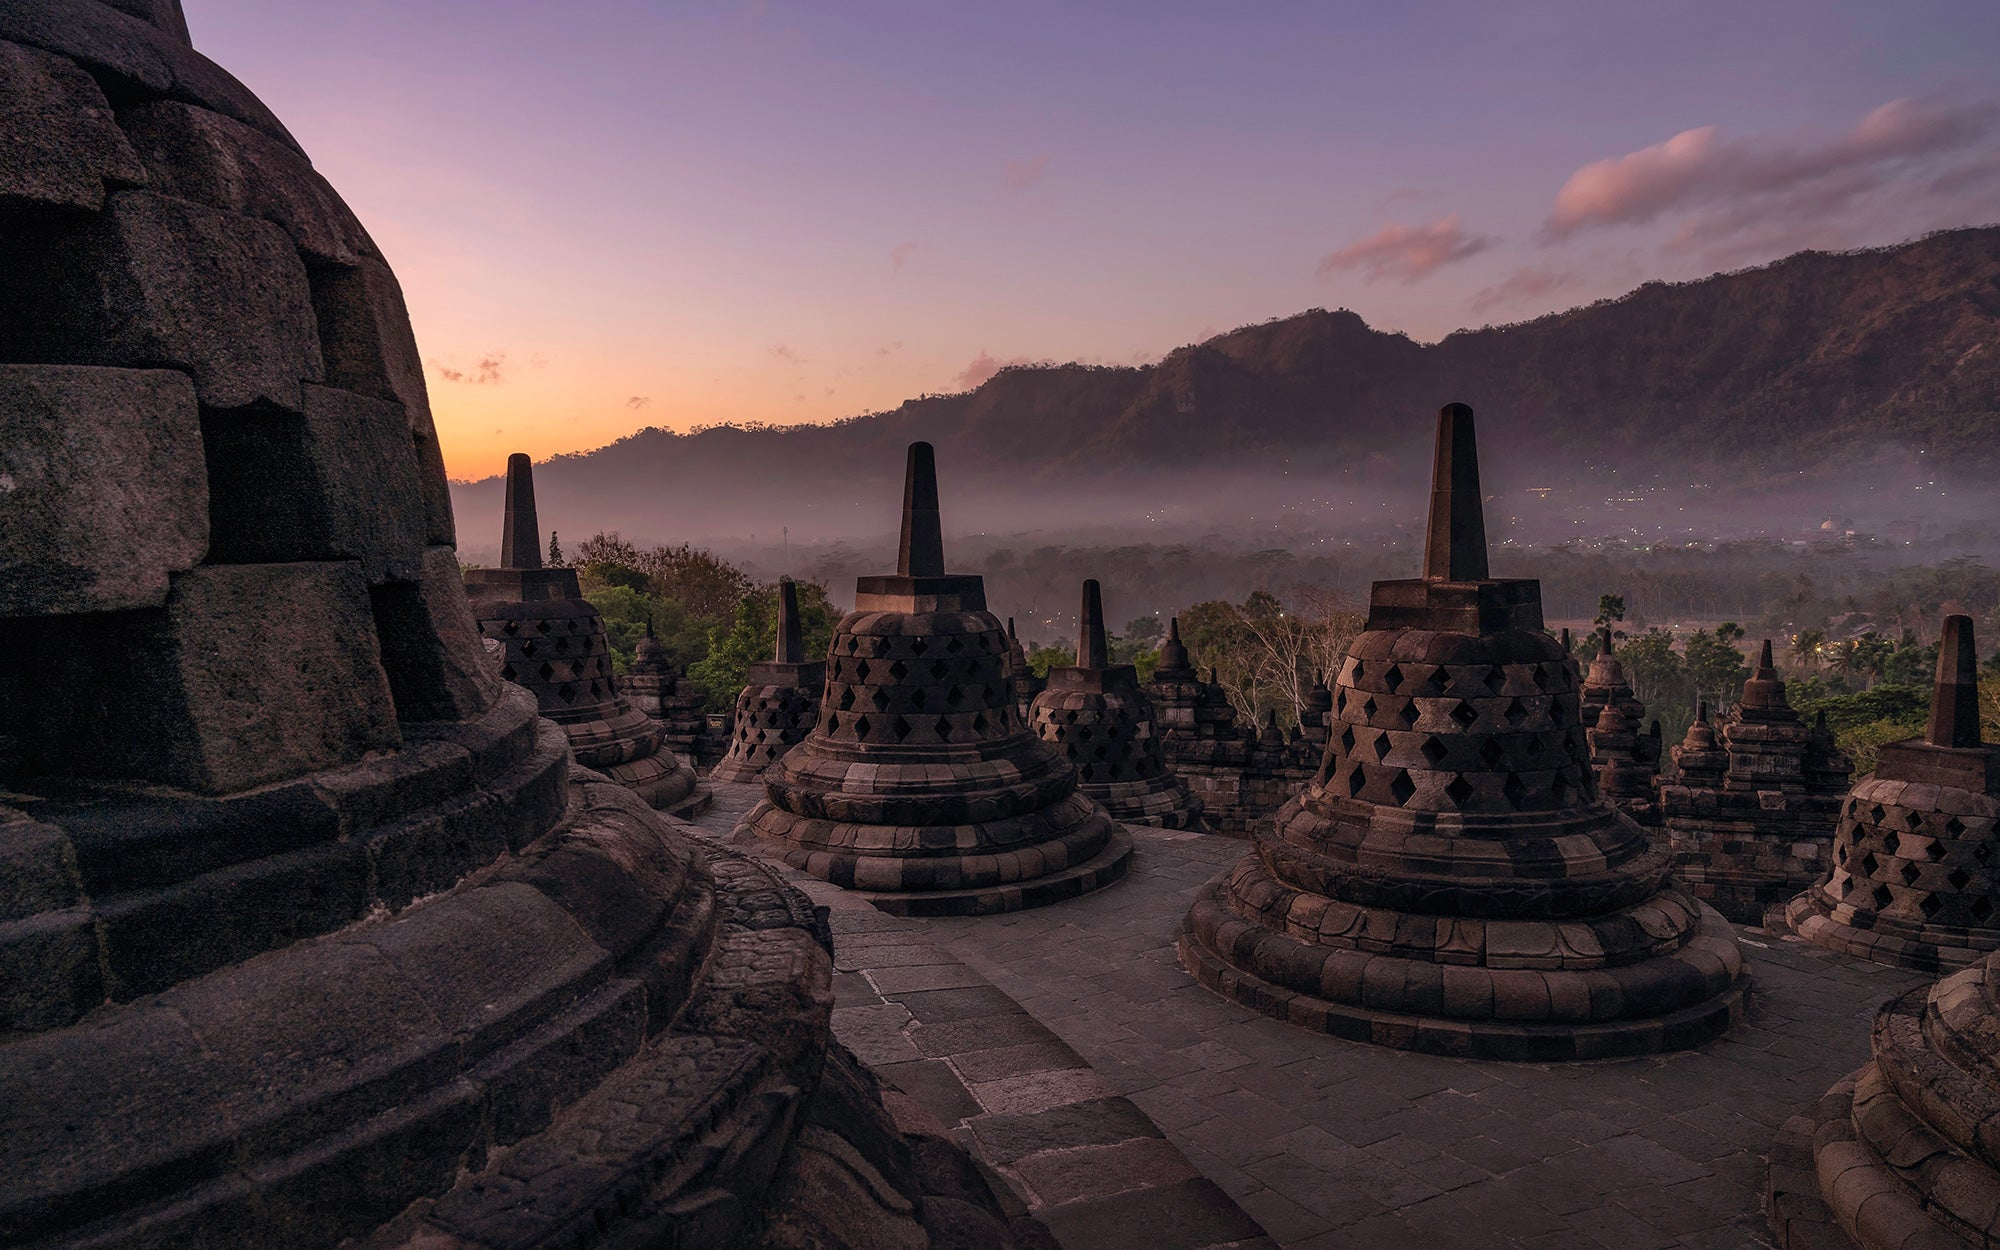 Indonesia borobudur the lost temple